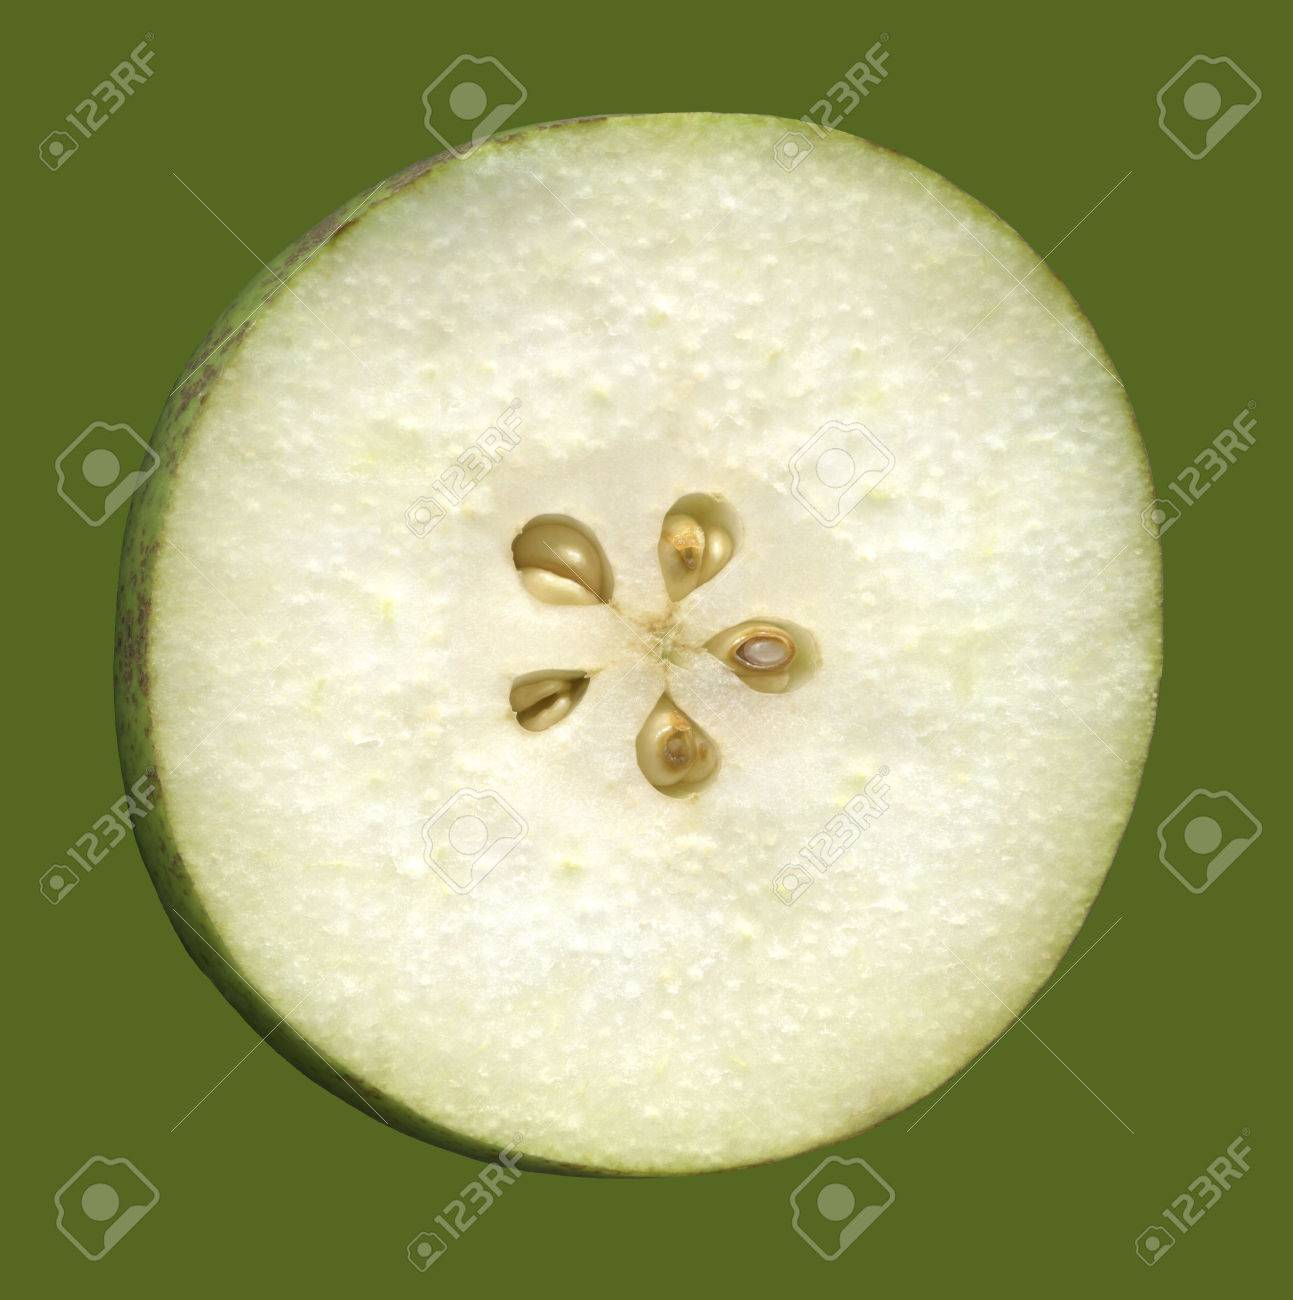 Cross section of fruit of pear, isolated on a green background. Building pear from the inside, where you can see her flesh and the core with the seeds. - 46572508